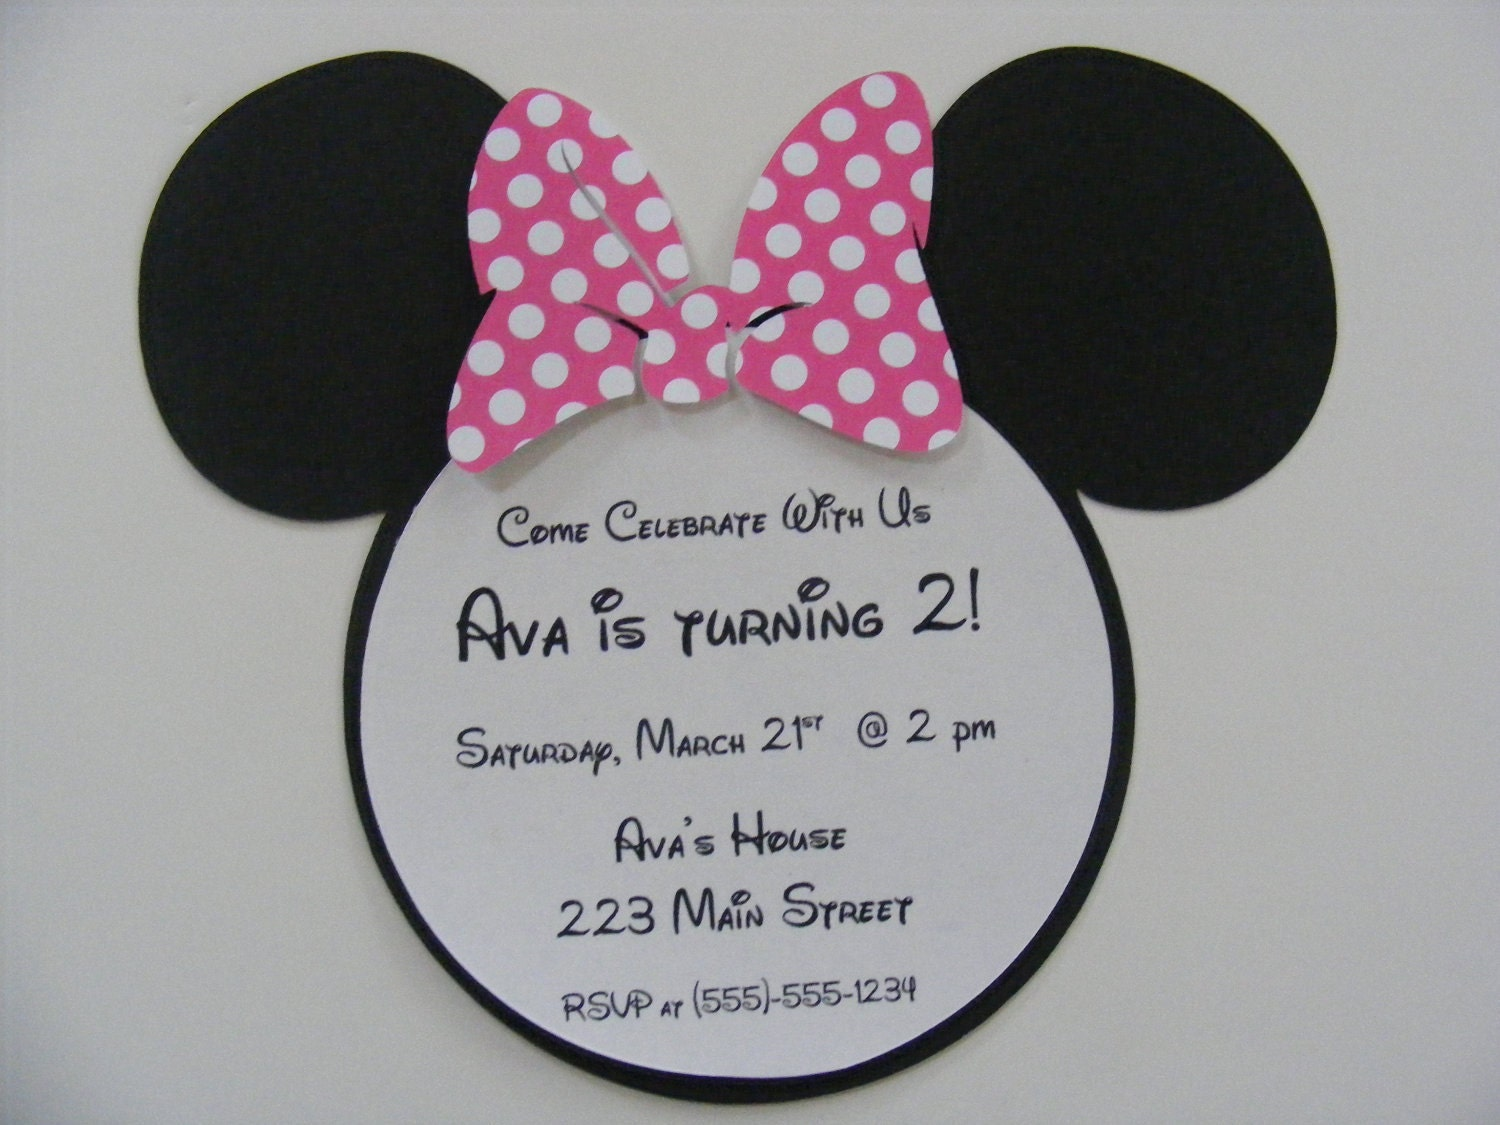 Invitaciónes para baby shower de Minnie Mouse - Imagui